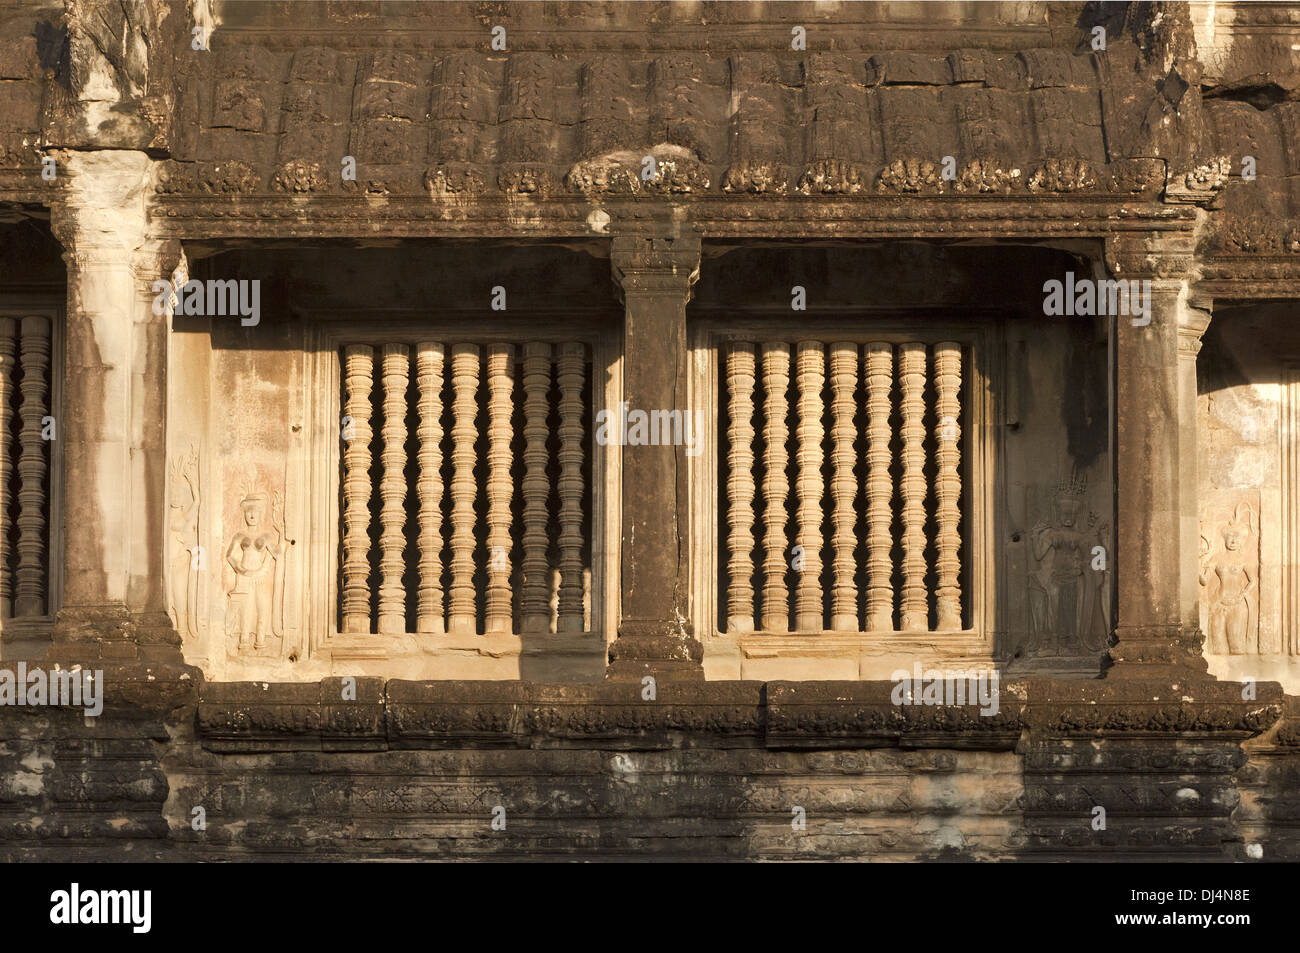 windows with balusters in stone, Angkor Wat Stock Photo